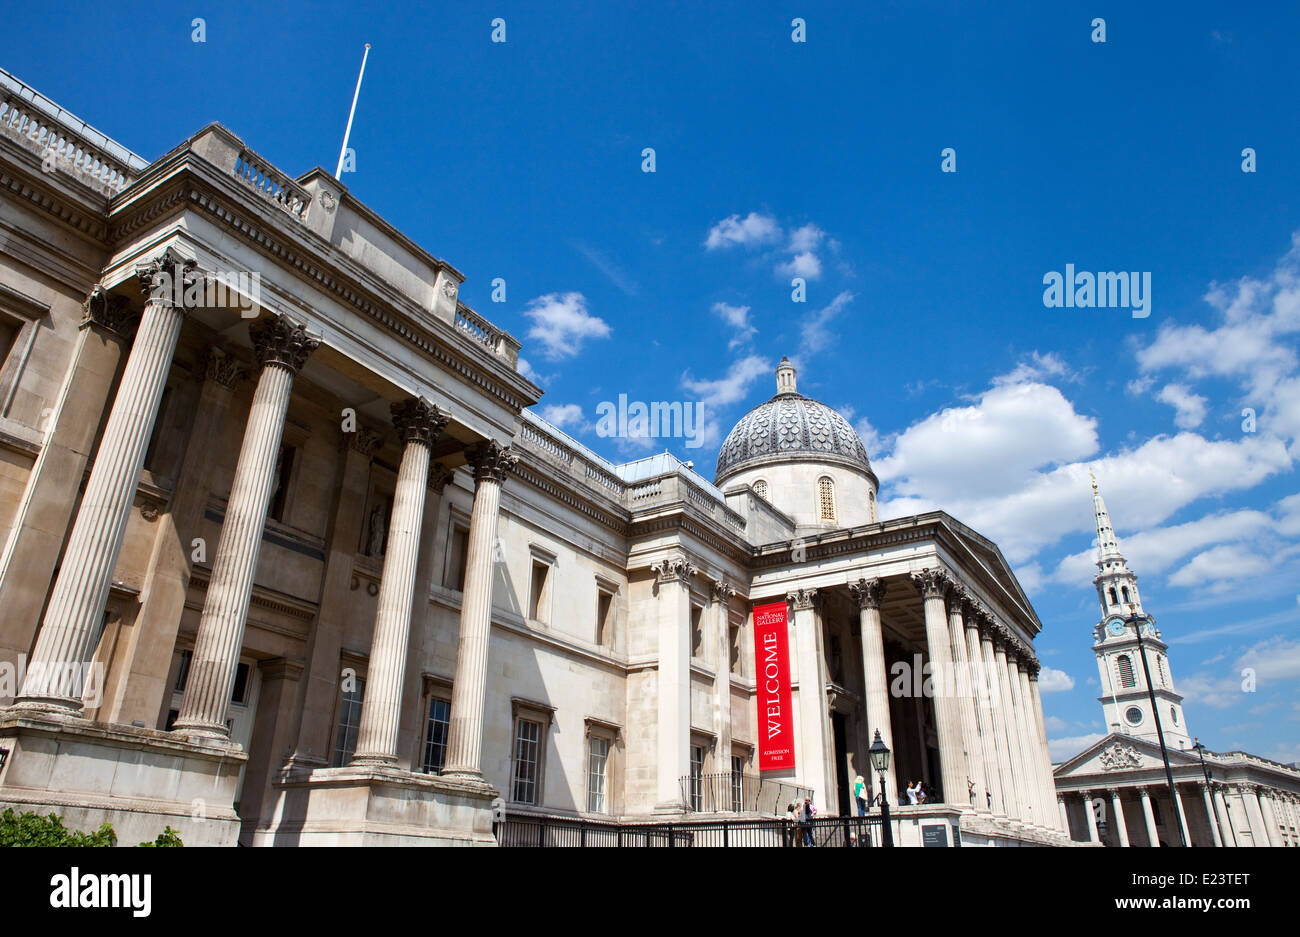 LONDON, UK - JUNE 12TH 2014: The magnificent National Gallery and St Martin in the Fields Church in london on 12th - Stock Image